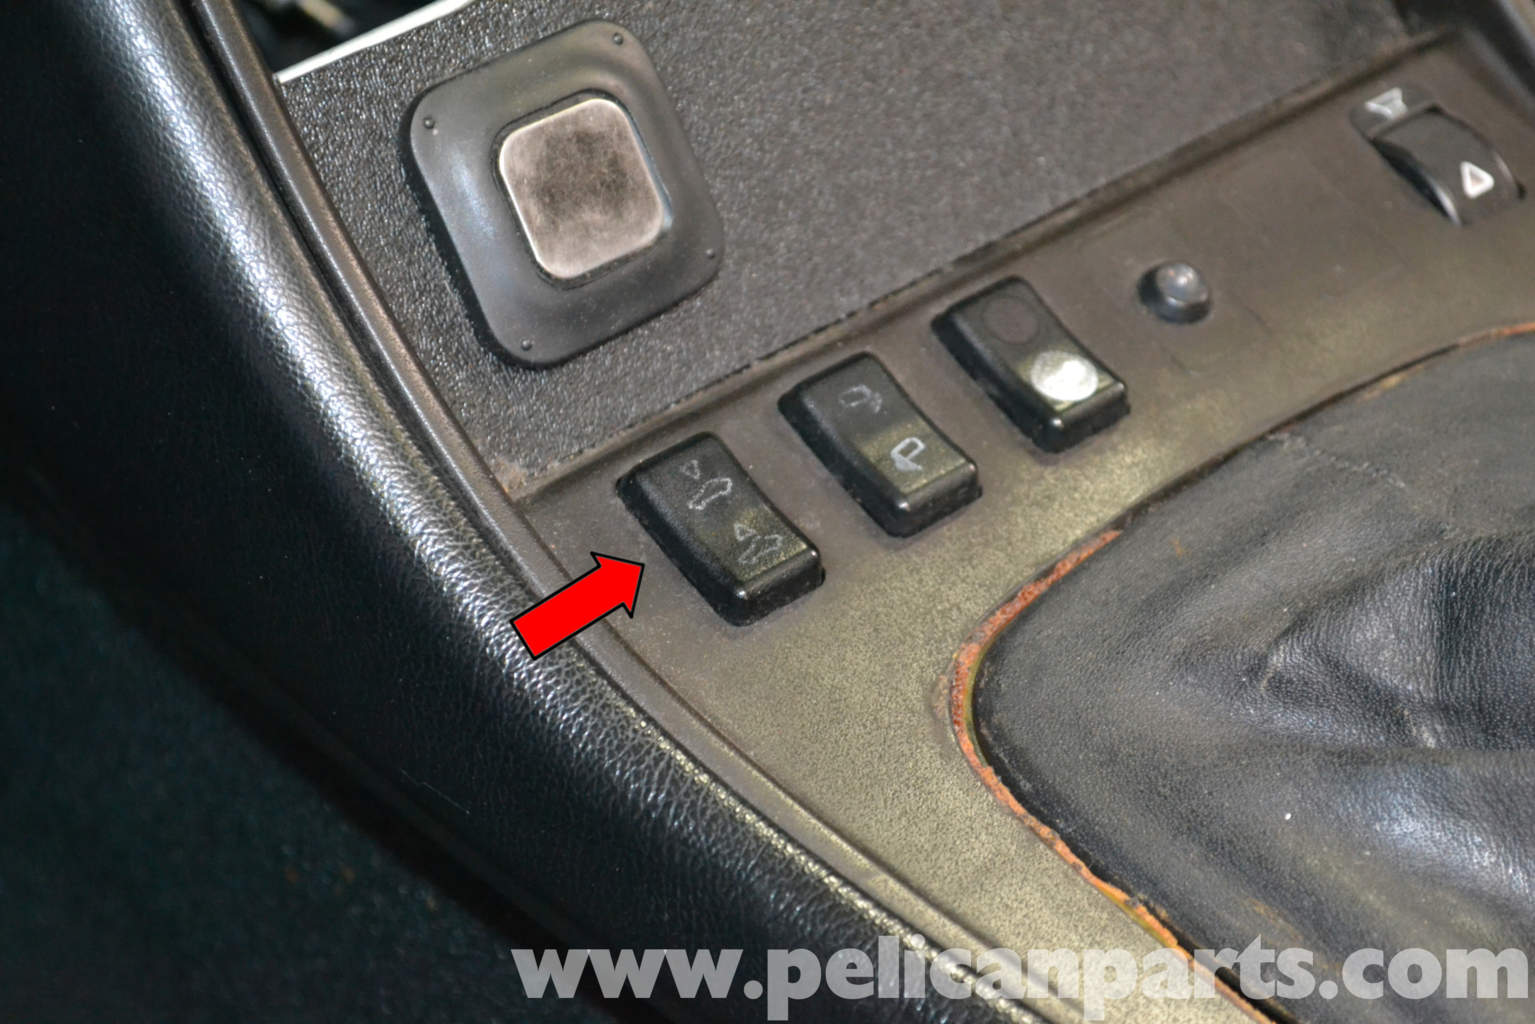 pelican technical article porsche 944 turbo sunroof operation and maintenance